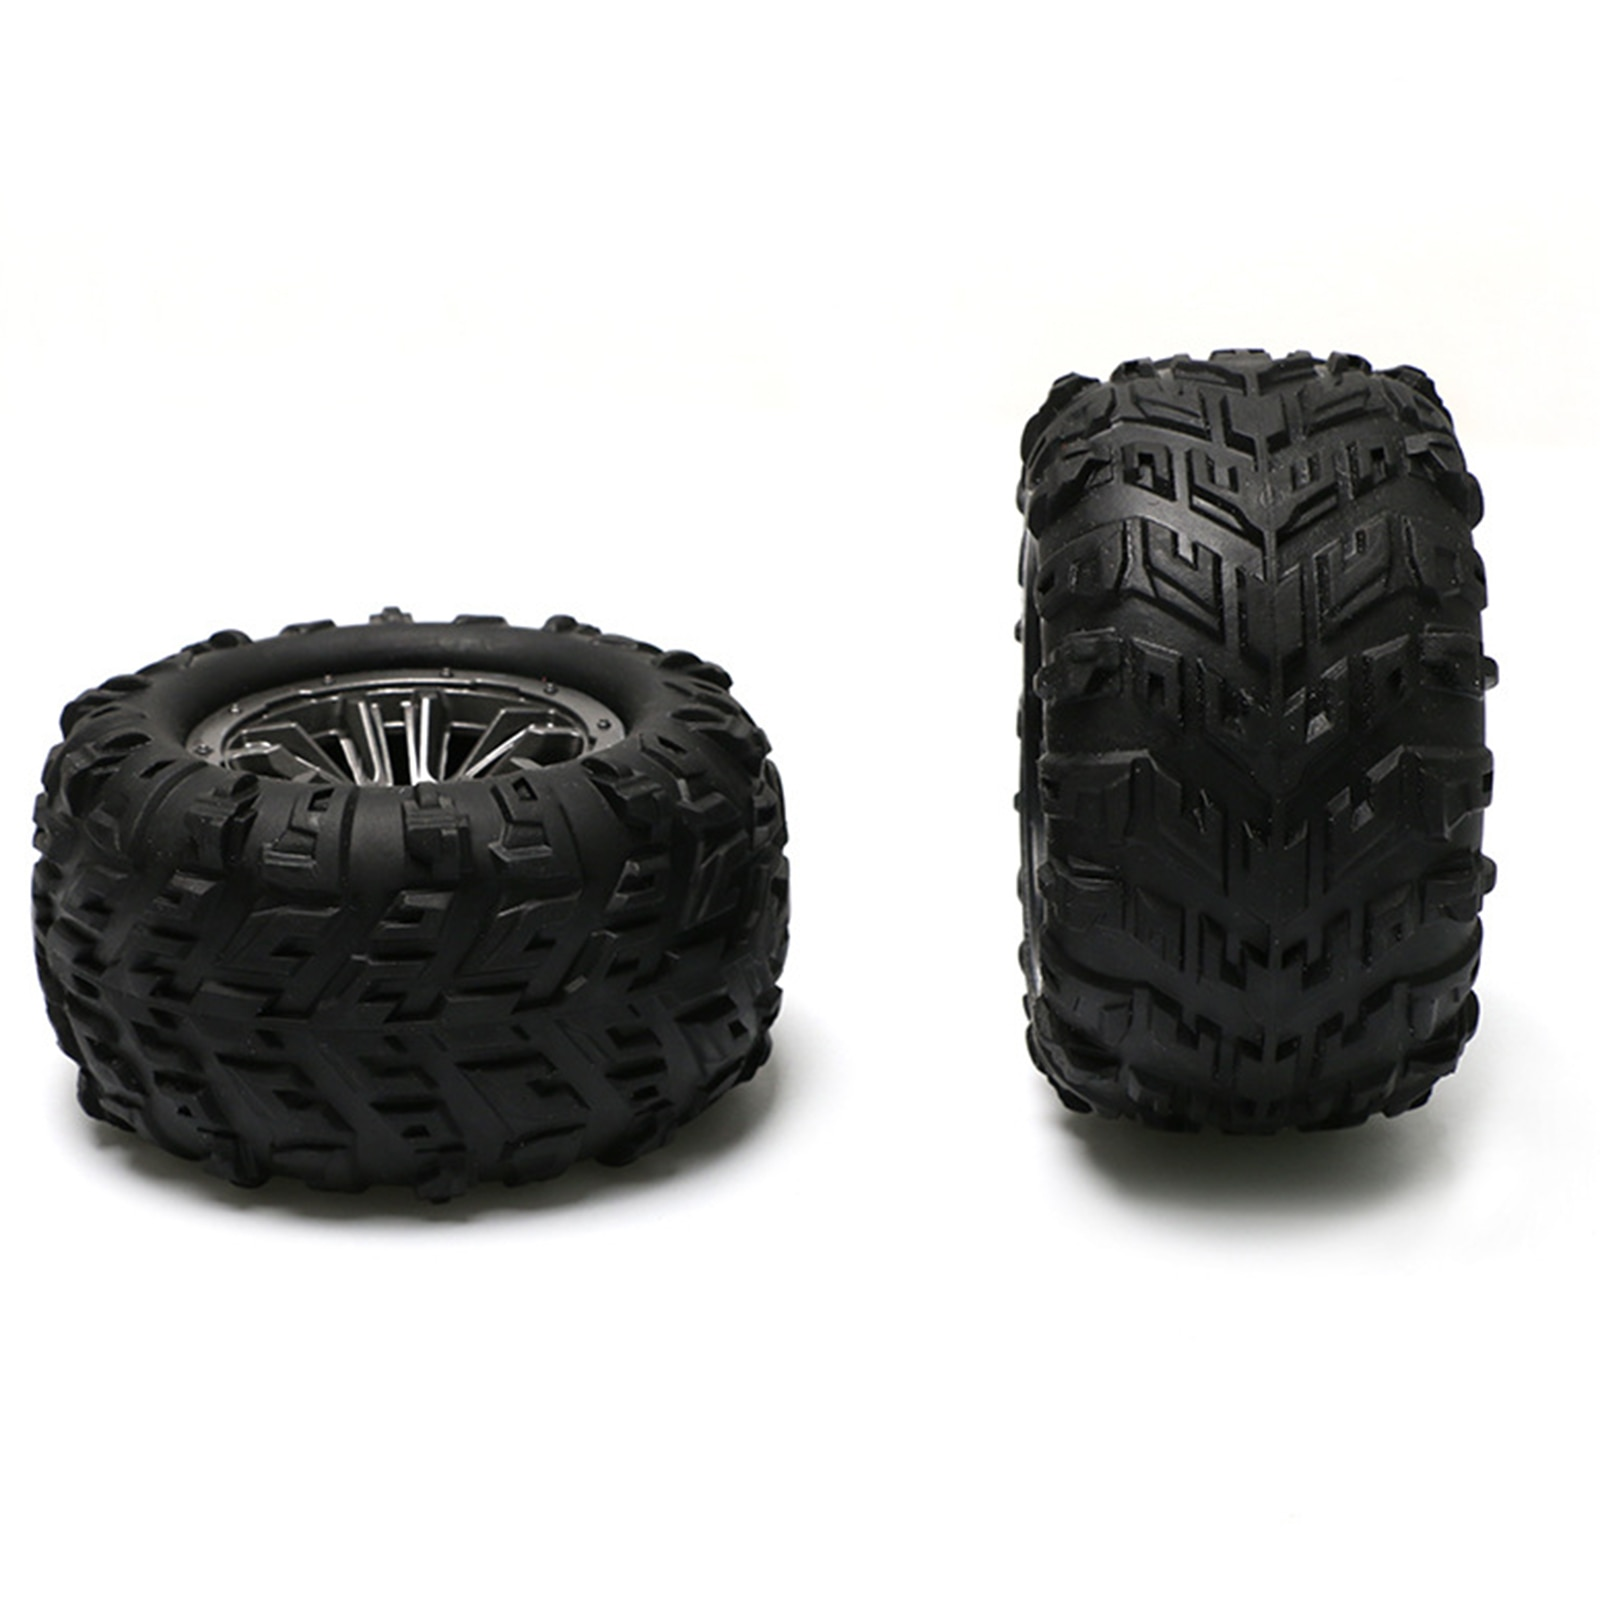 Rubber Tyres Wheel Assembly for for Feiyue 1:12 FY01 FY02 FY03 FY04 RC Cars